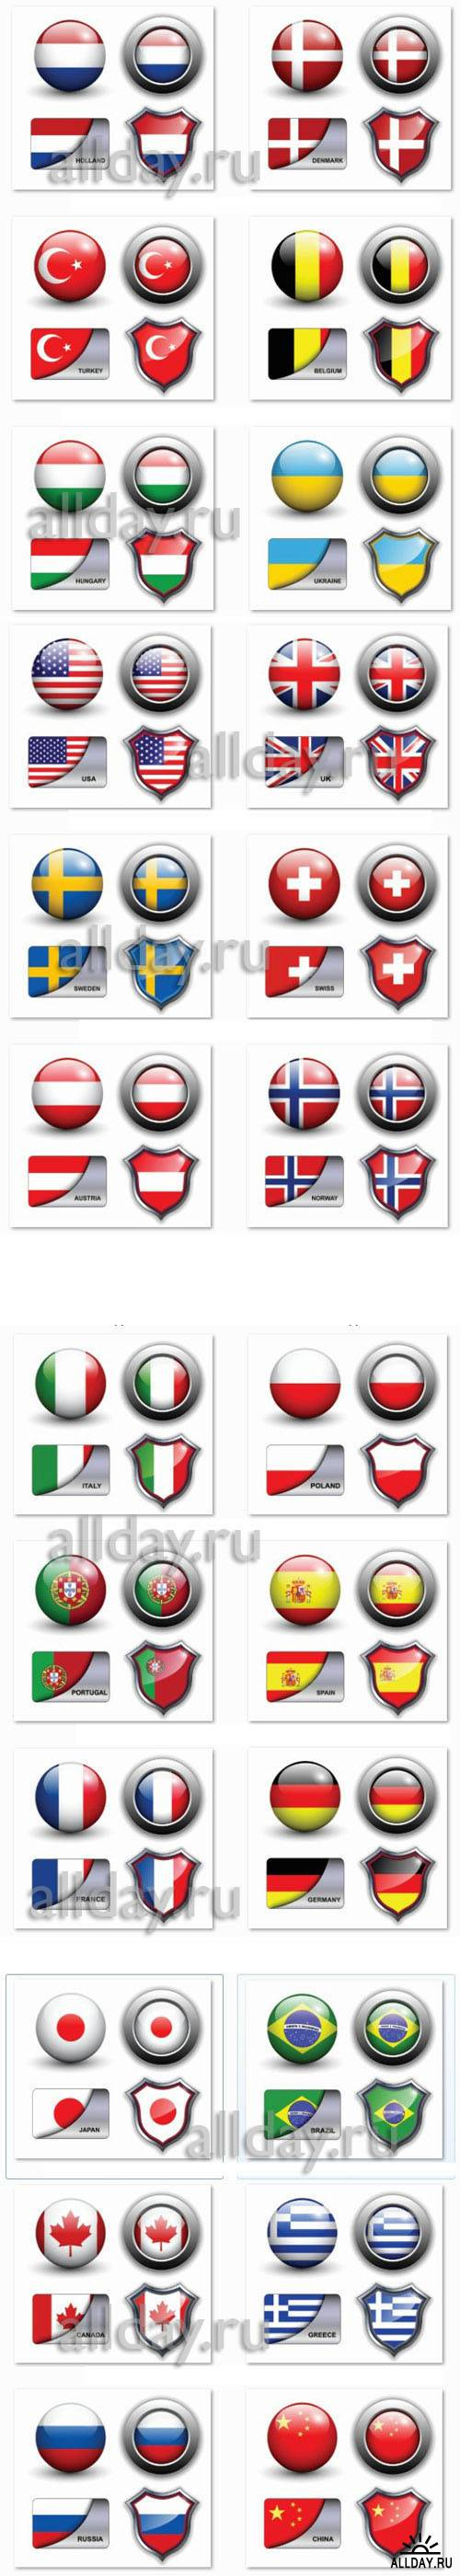 Flags - buttons and banners vector